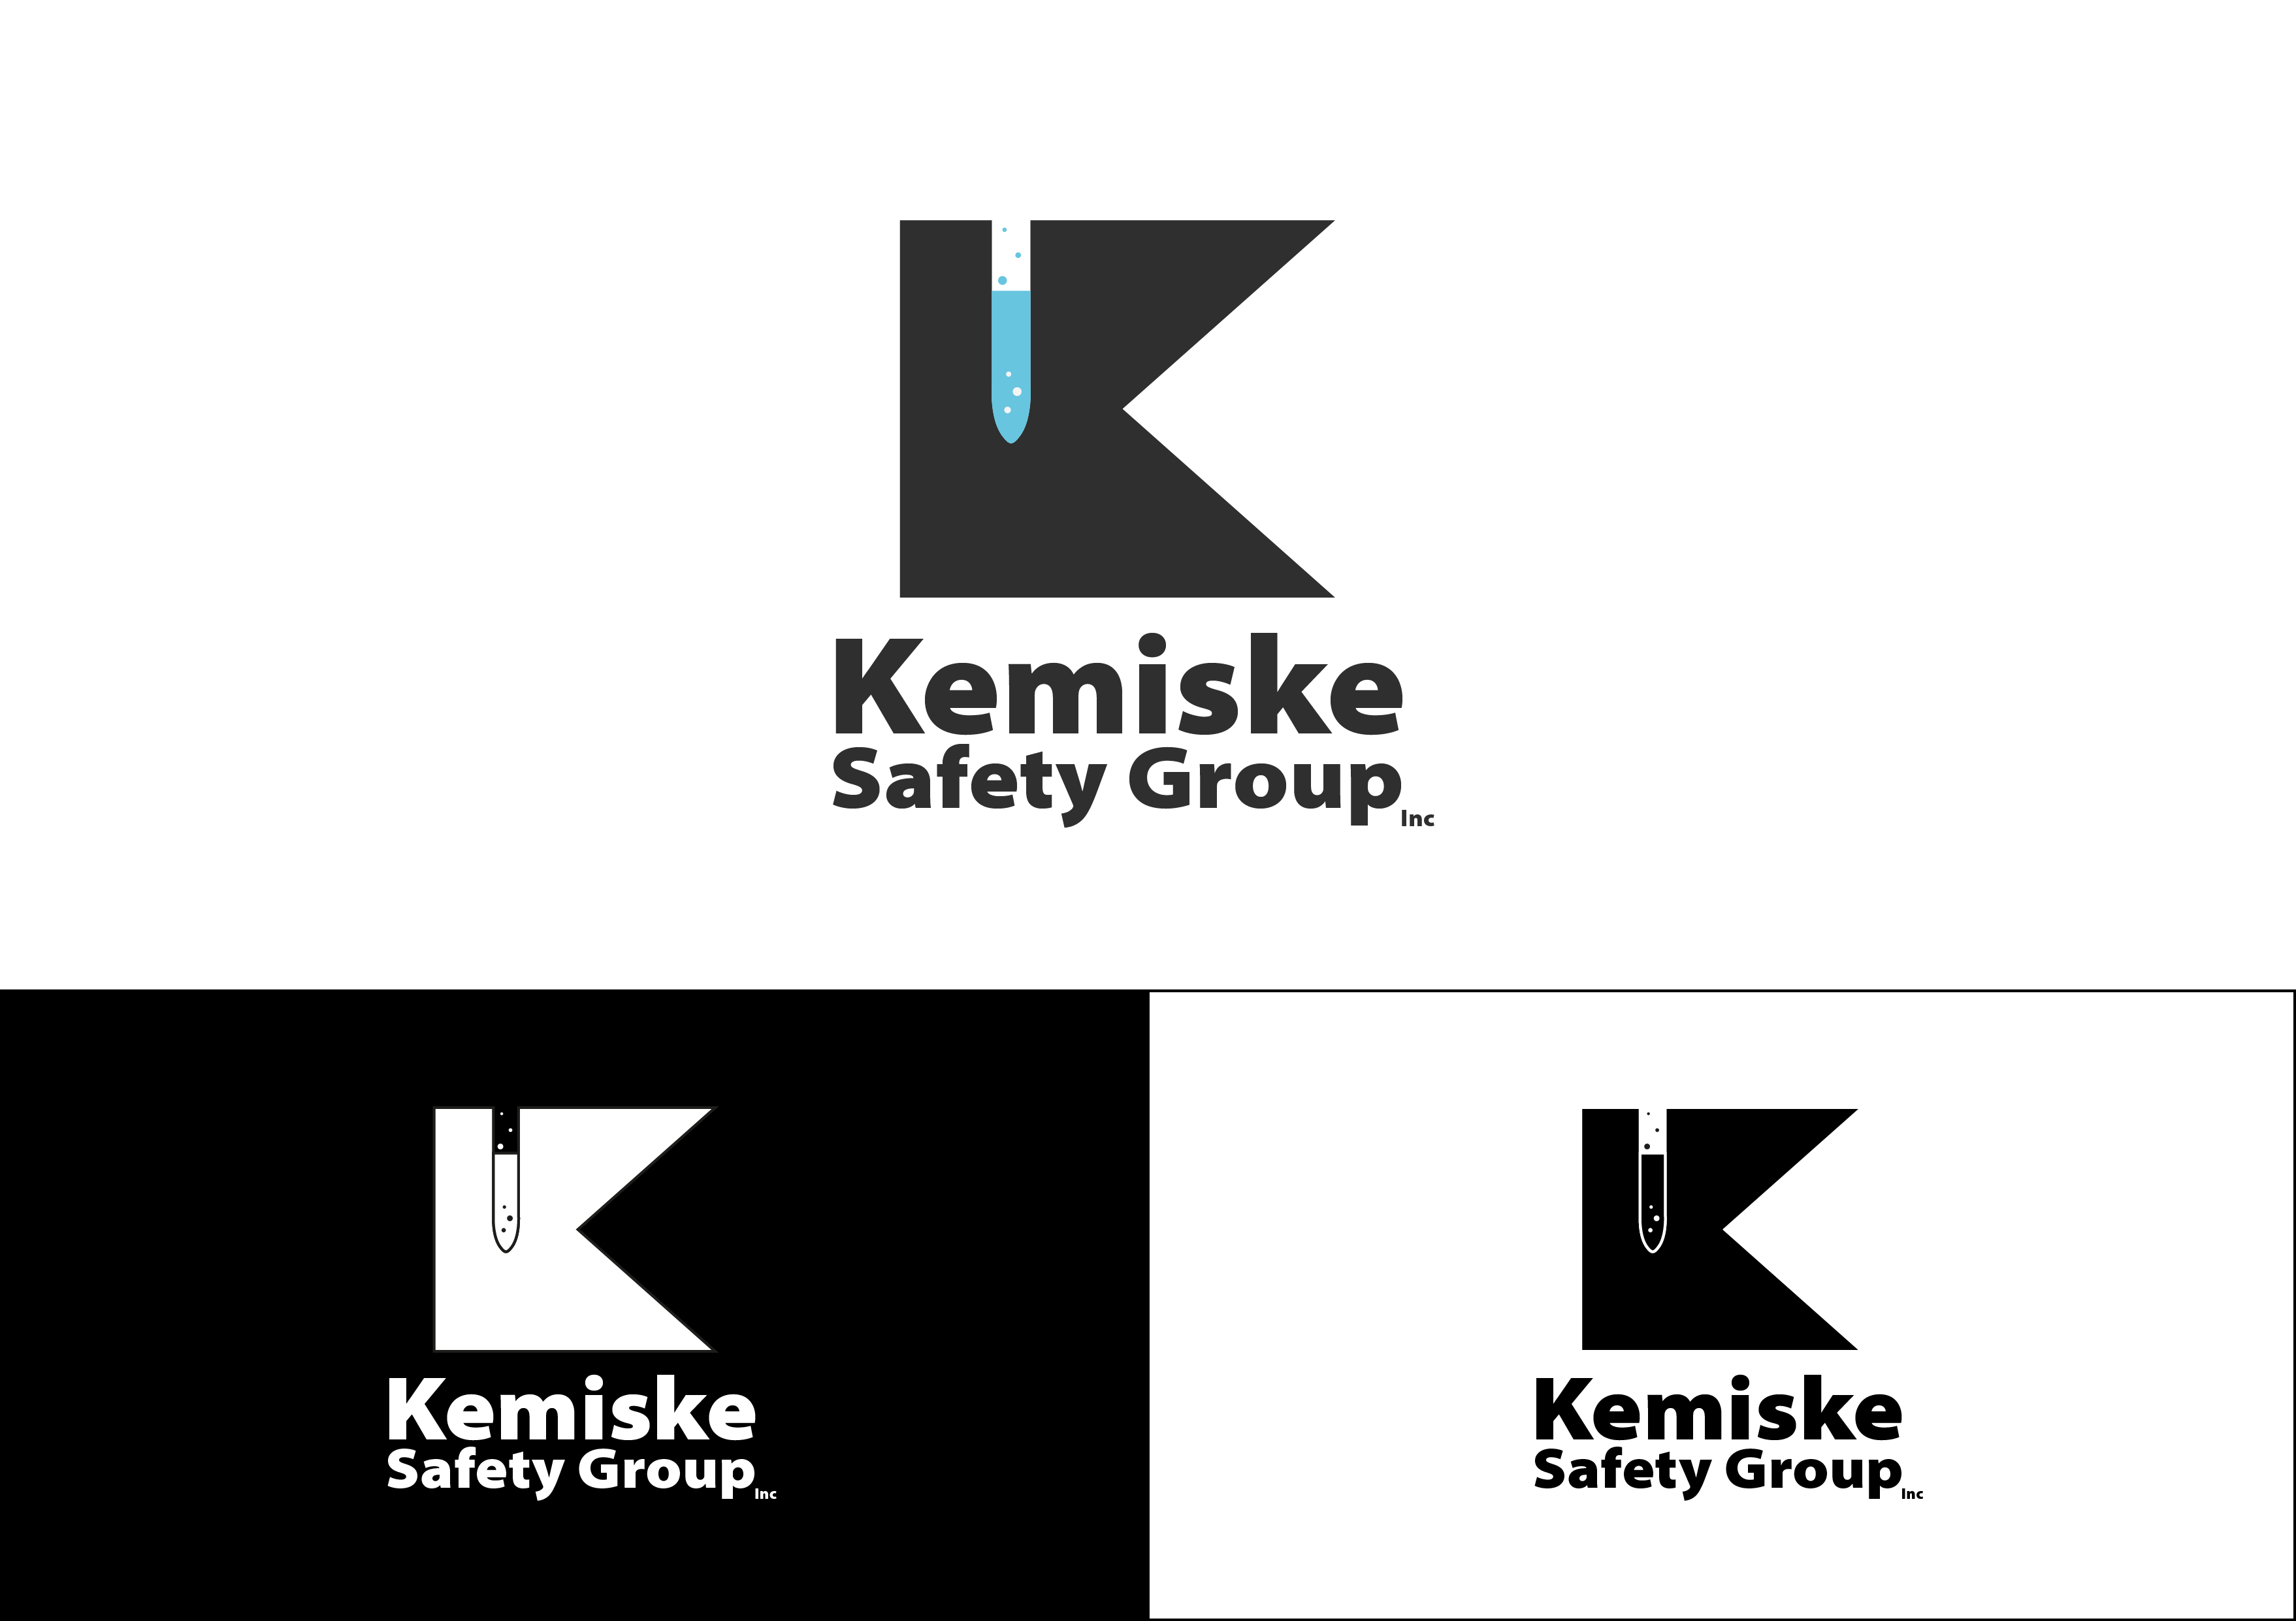 Logo Design by 3draw - Entry No. 55 in the Logo Design Contest New Logo Design for Kemiske Safety Group Inc..